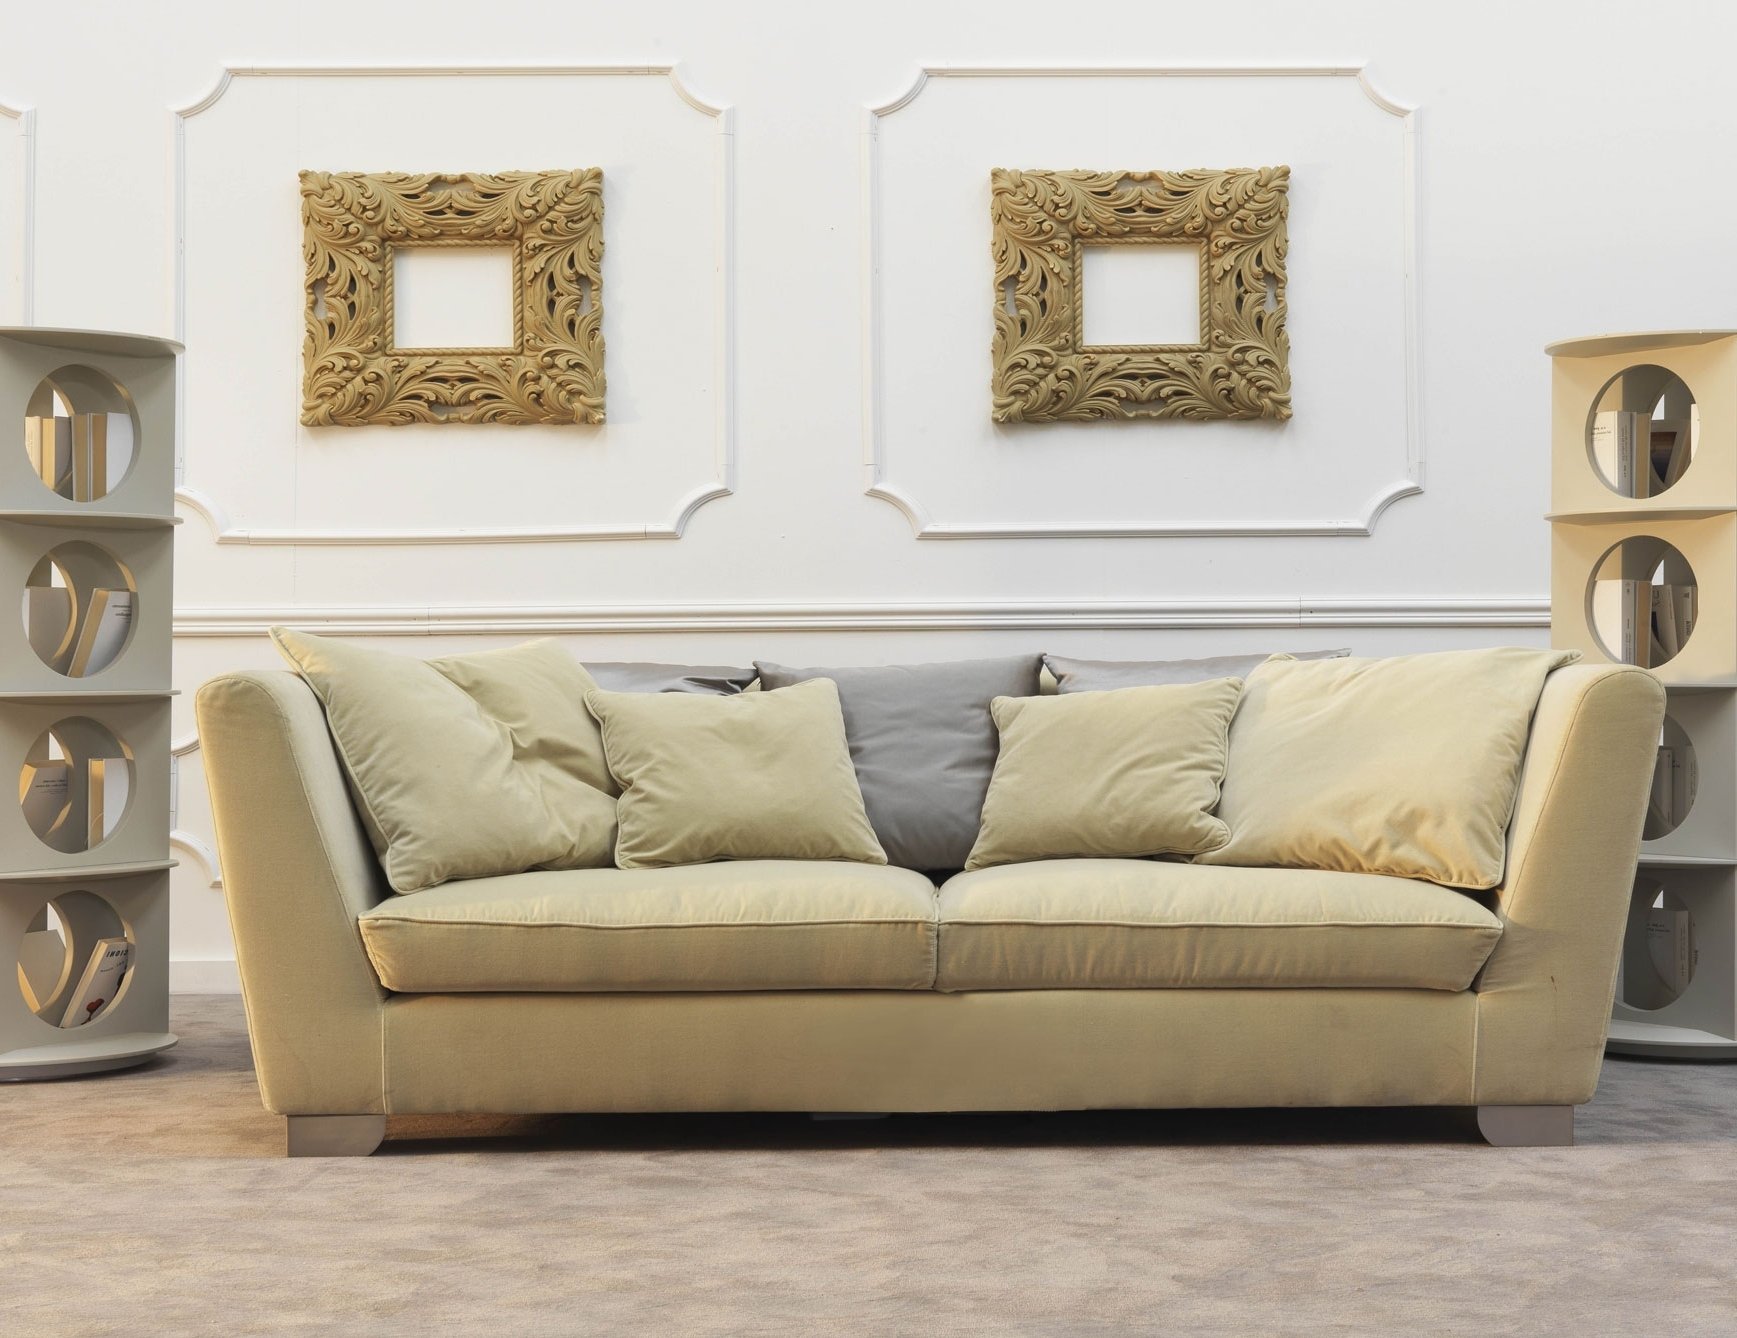 2018 Elegant Sofa And Chairs 85 For Sofas And Couches Ideas With Sofa Throughout Elegant Sofas And Chairs (View 1 of 15)